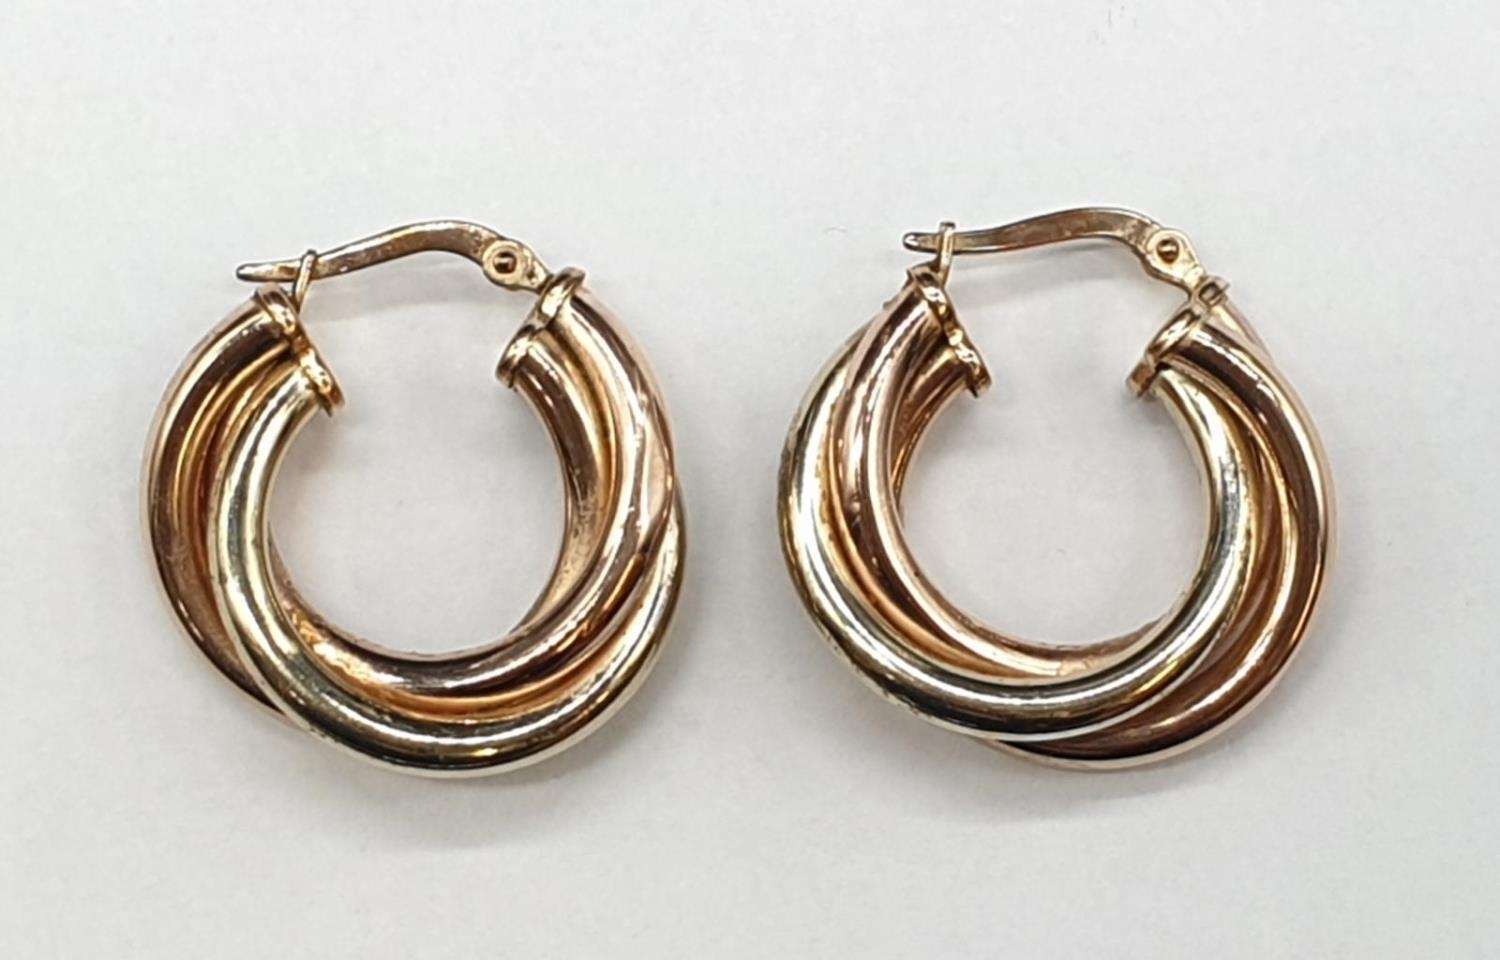 9ct 3 colours Gold Earrings 3.4g - Image 3 of 4